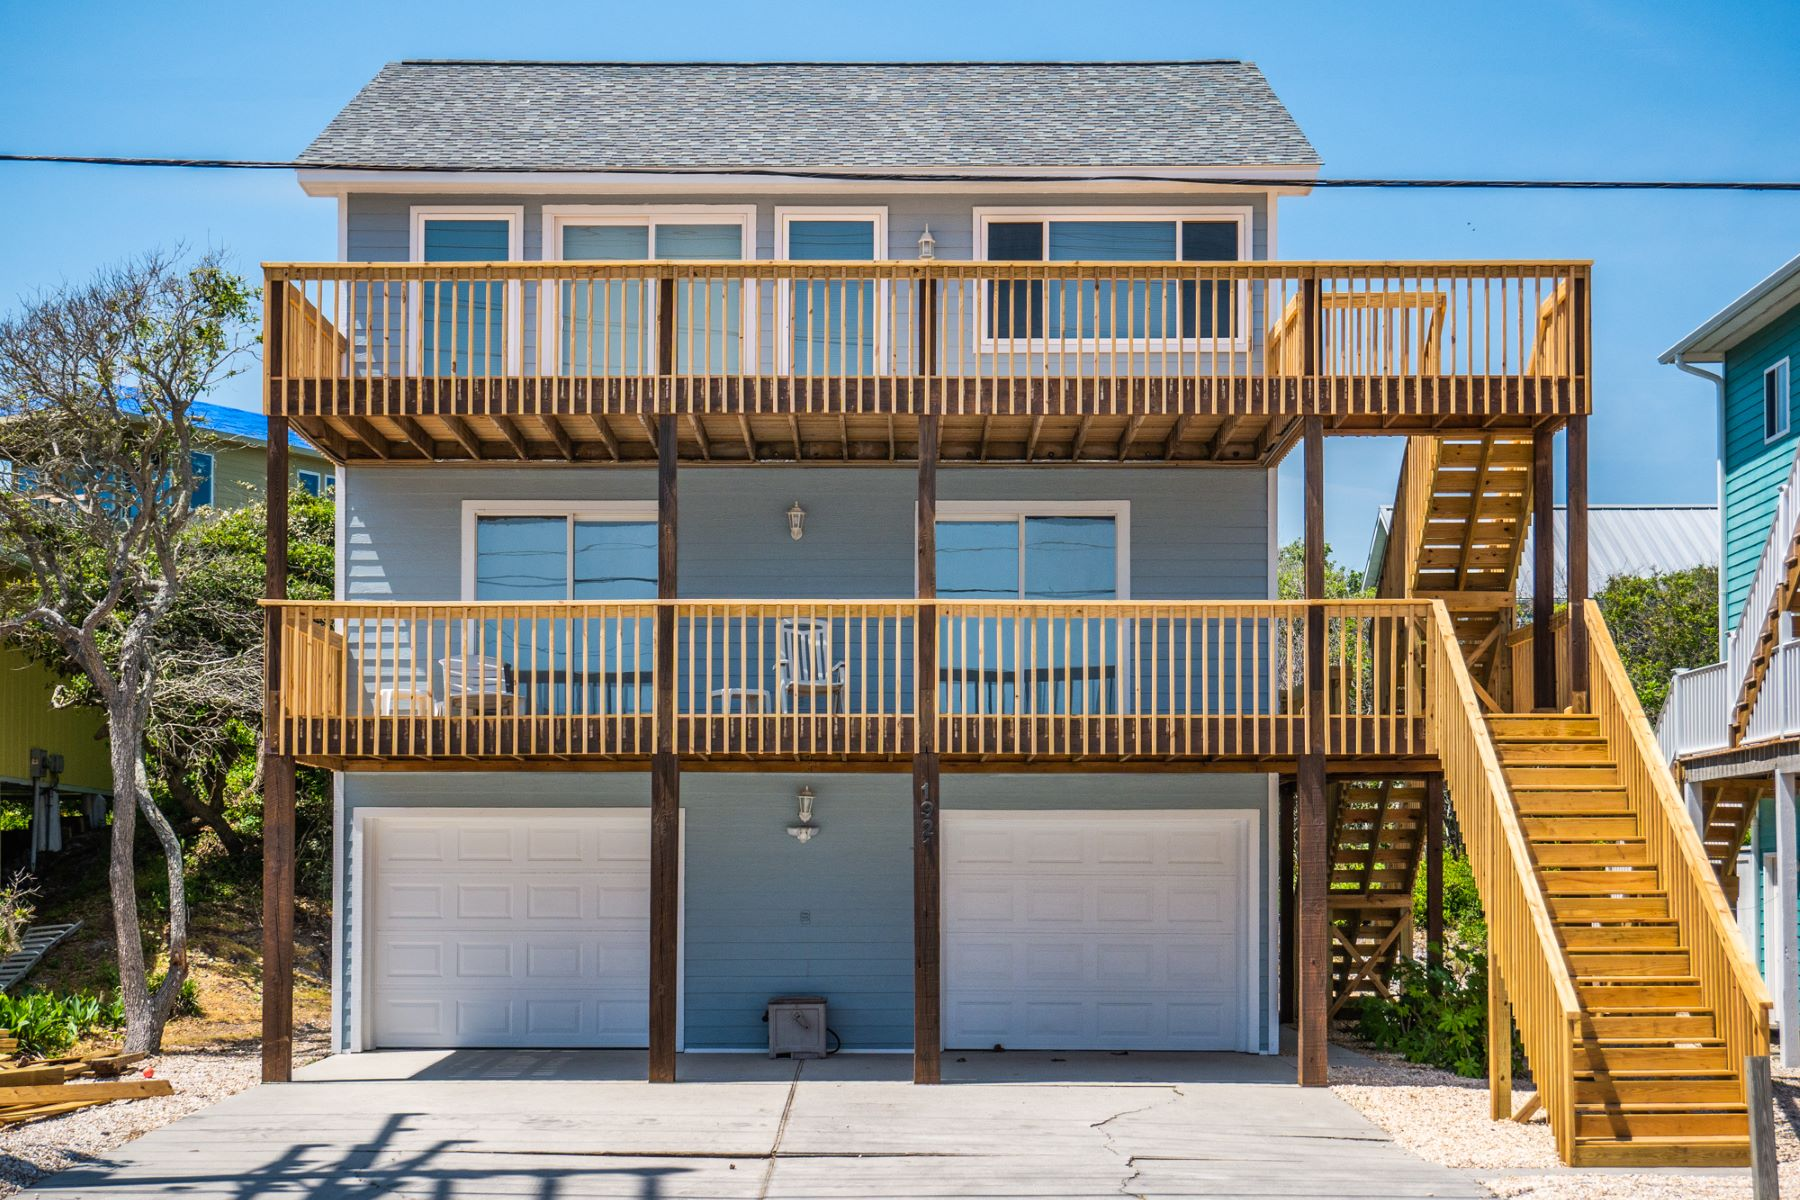 Single Family Home for Active at Ocean Views Abound from this Island Home 1921 S Shore Drive Surf City, North Carolina 28445 United States